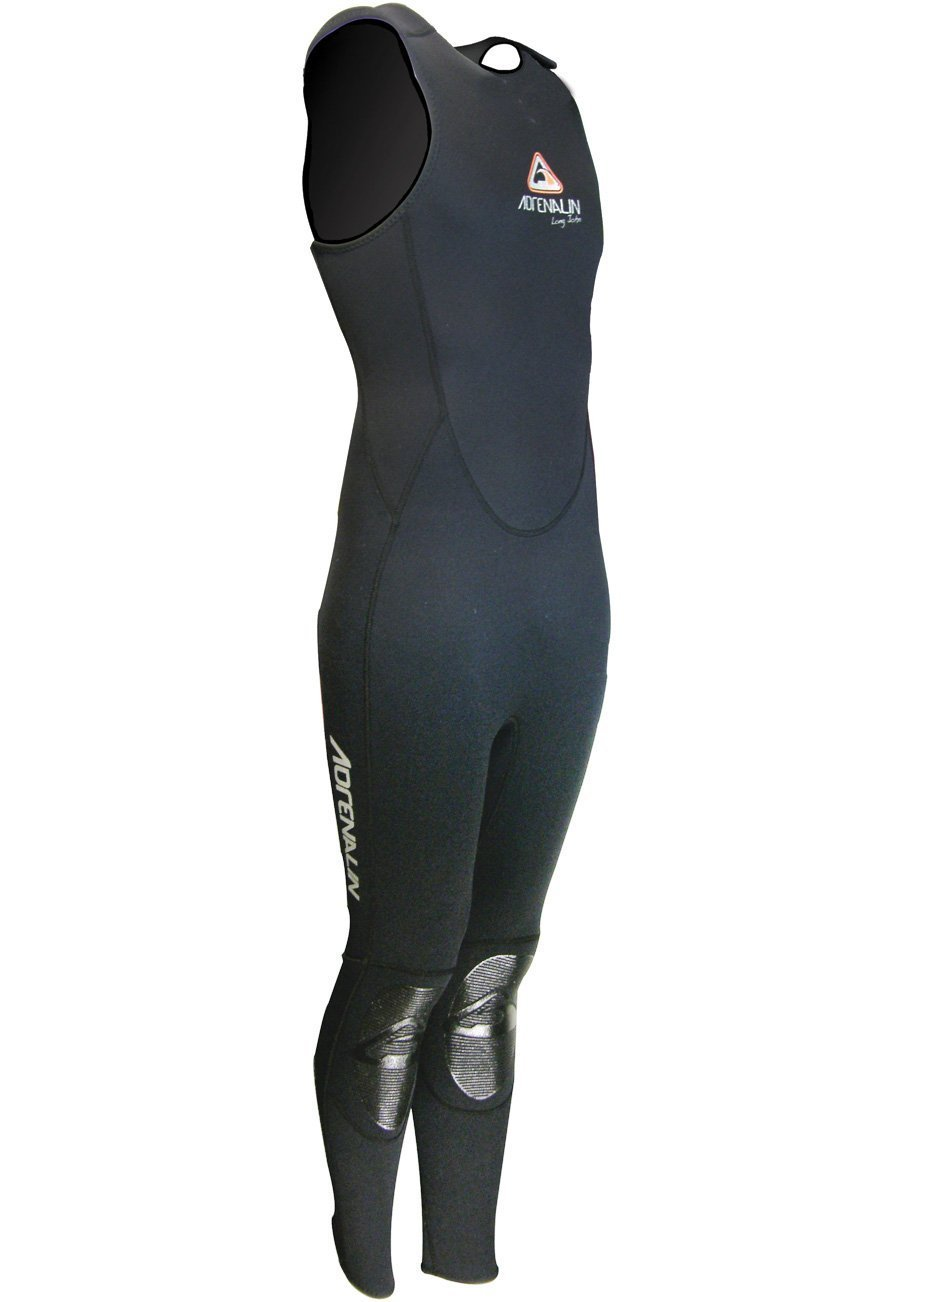 buy long john online Adrenalin 3/2mm Wetsuit shop